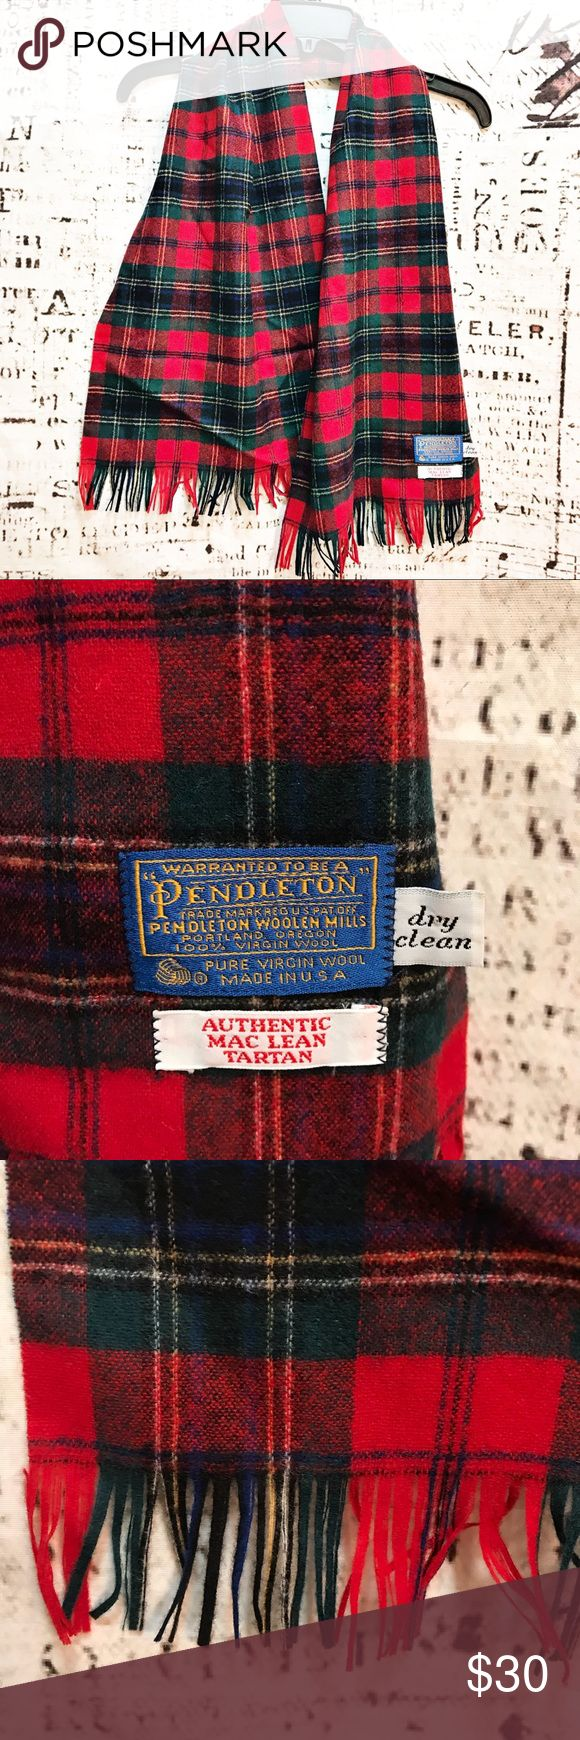 """Pendleton Woolen Mills Tartan Plaid Scarf Maclean Beautiful, flawless scarf by Pendleton Woolen Mills. Mac Lean clan tartan plaid in 100% pure virgin wool made in Portland, Oregon. Scarf measures approx. 13"""" wide x 52"""" long including fringe. Red and green with slight hints of white and yellow. In perfect condition. Pendleton Accessories Scarves & Wraps"""